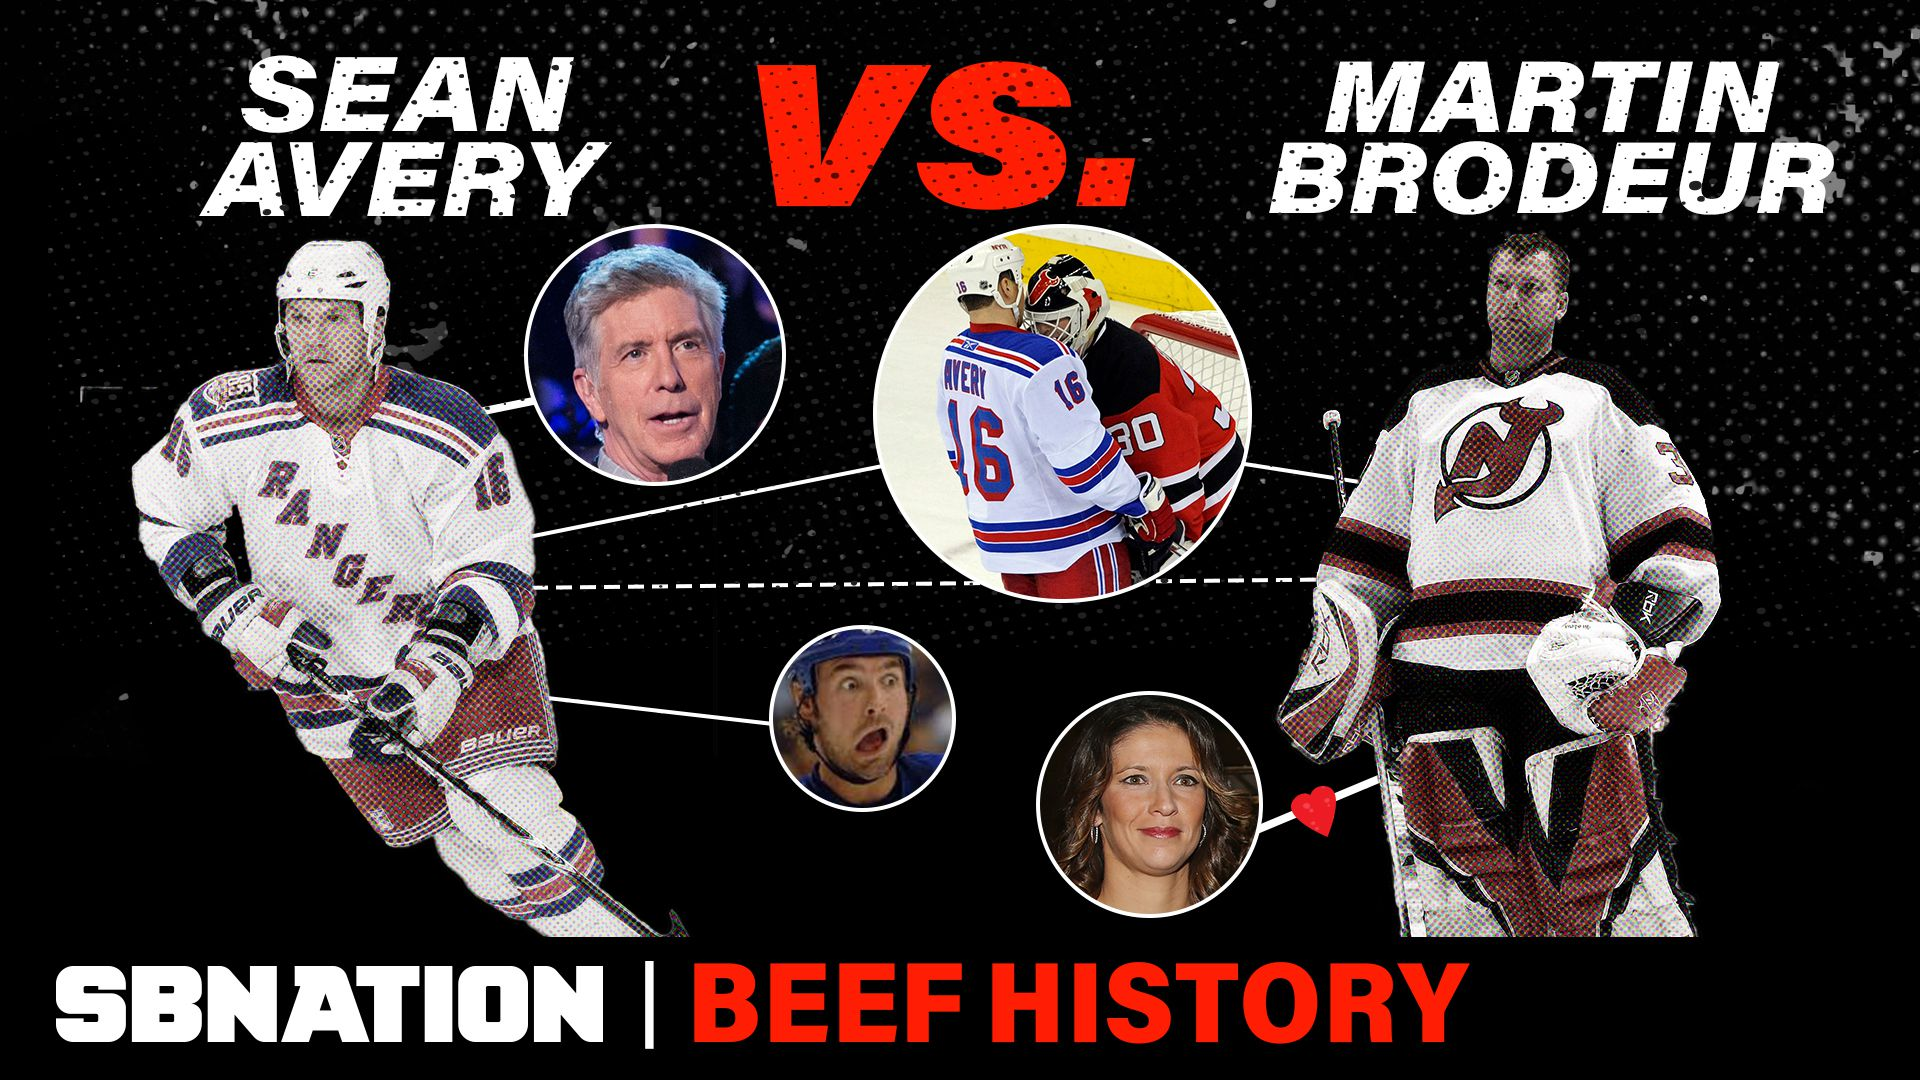 Remembering The Rivalry Between Sean Avery And Martin Brodeur